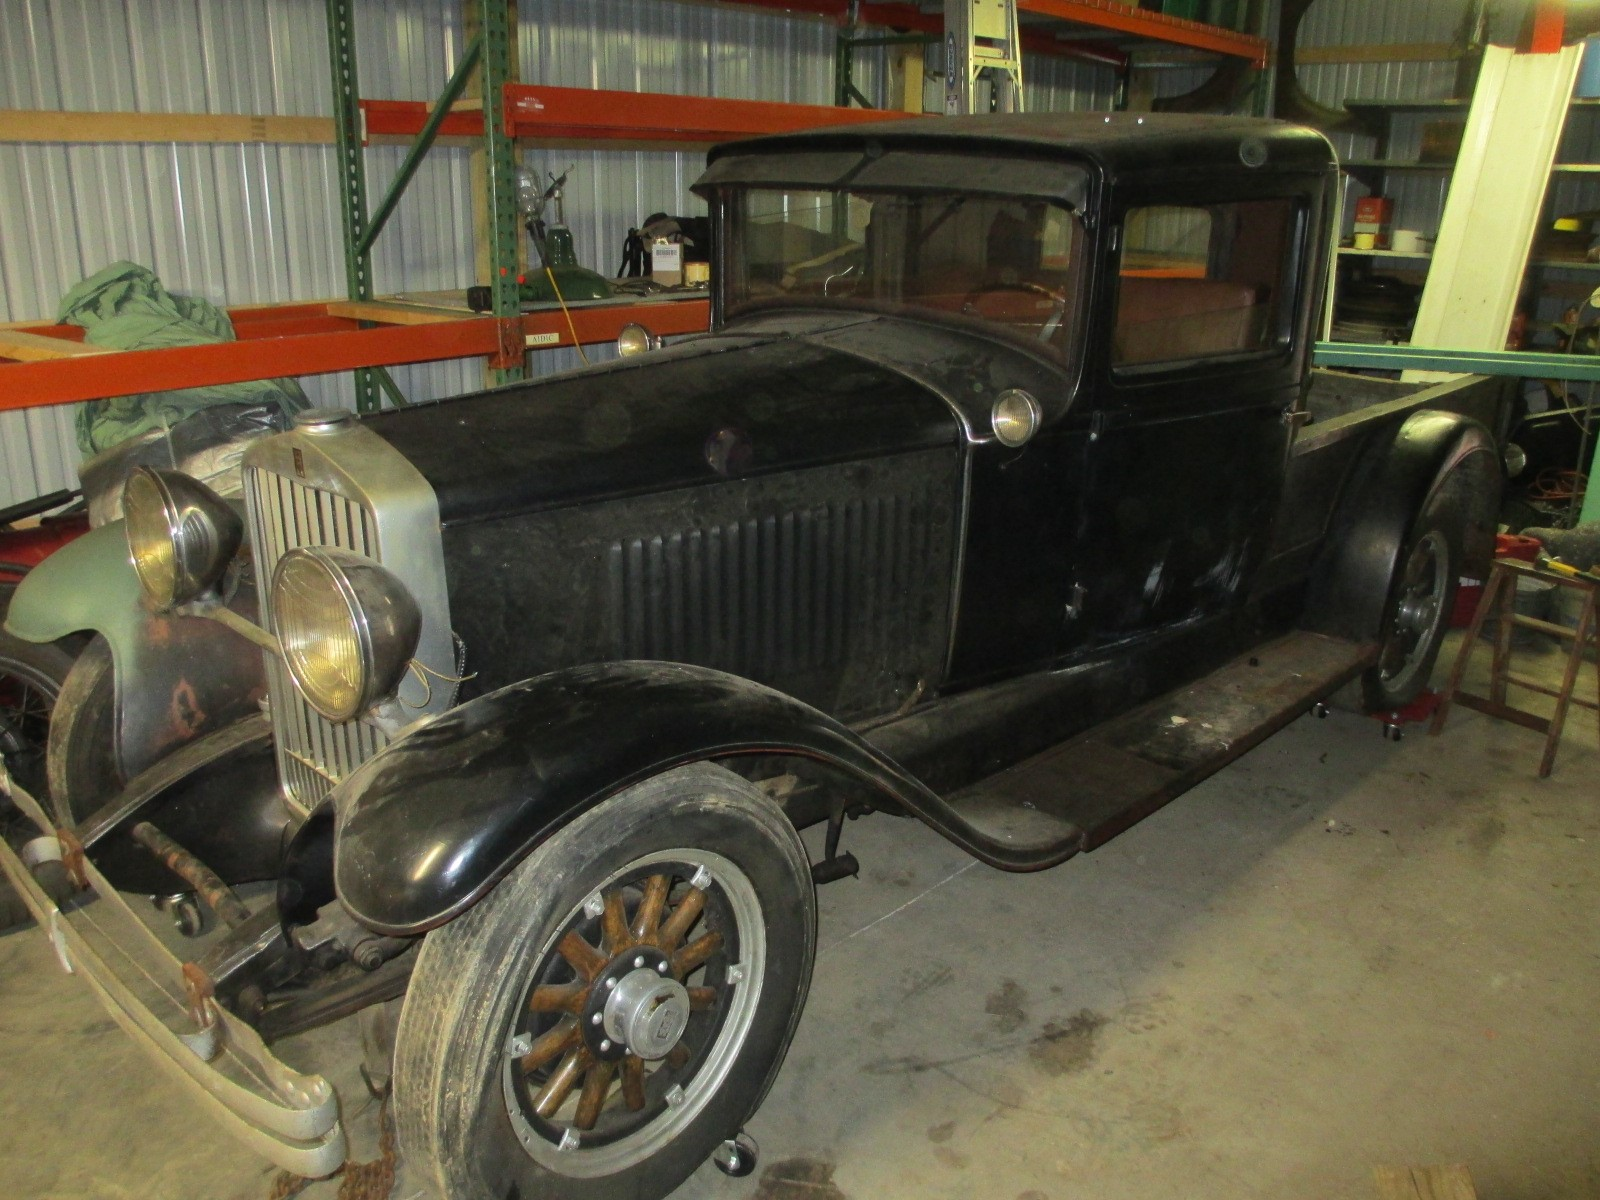 FOR SALE 1930 HUPMOBILE PICKUP TRUCK - Cars For Sale - Antique ...